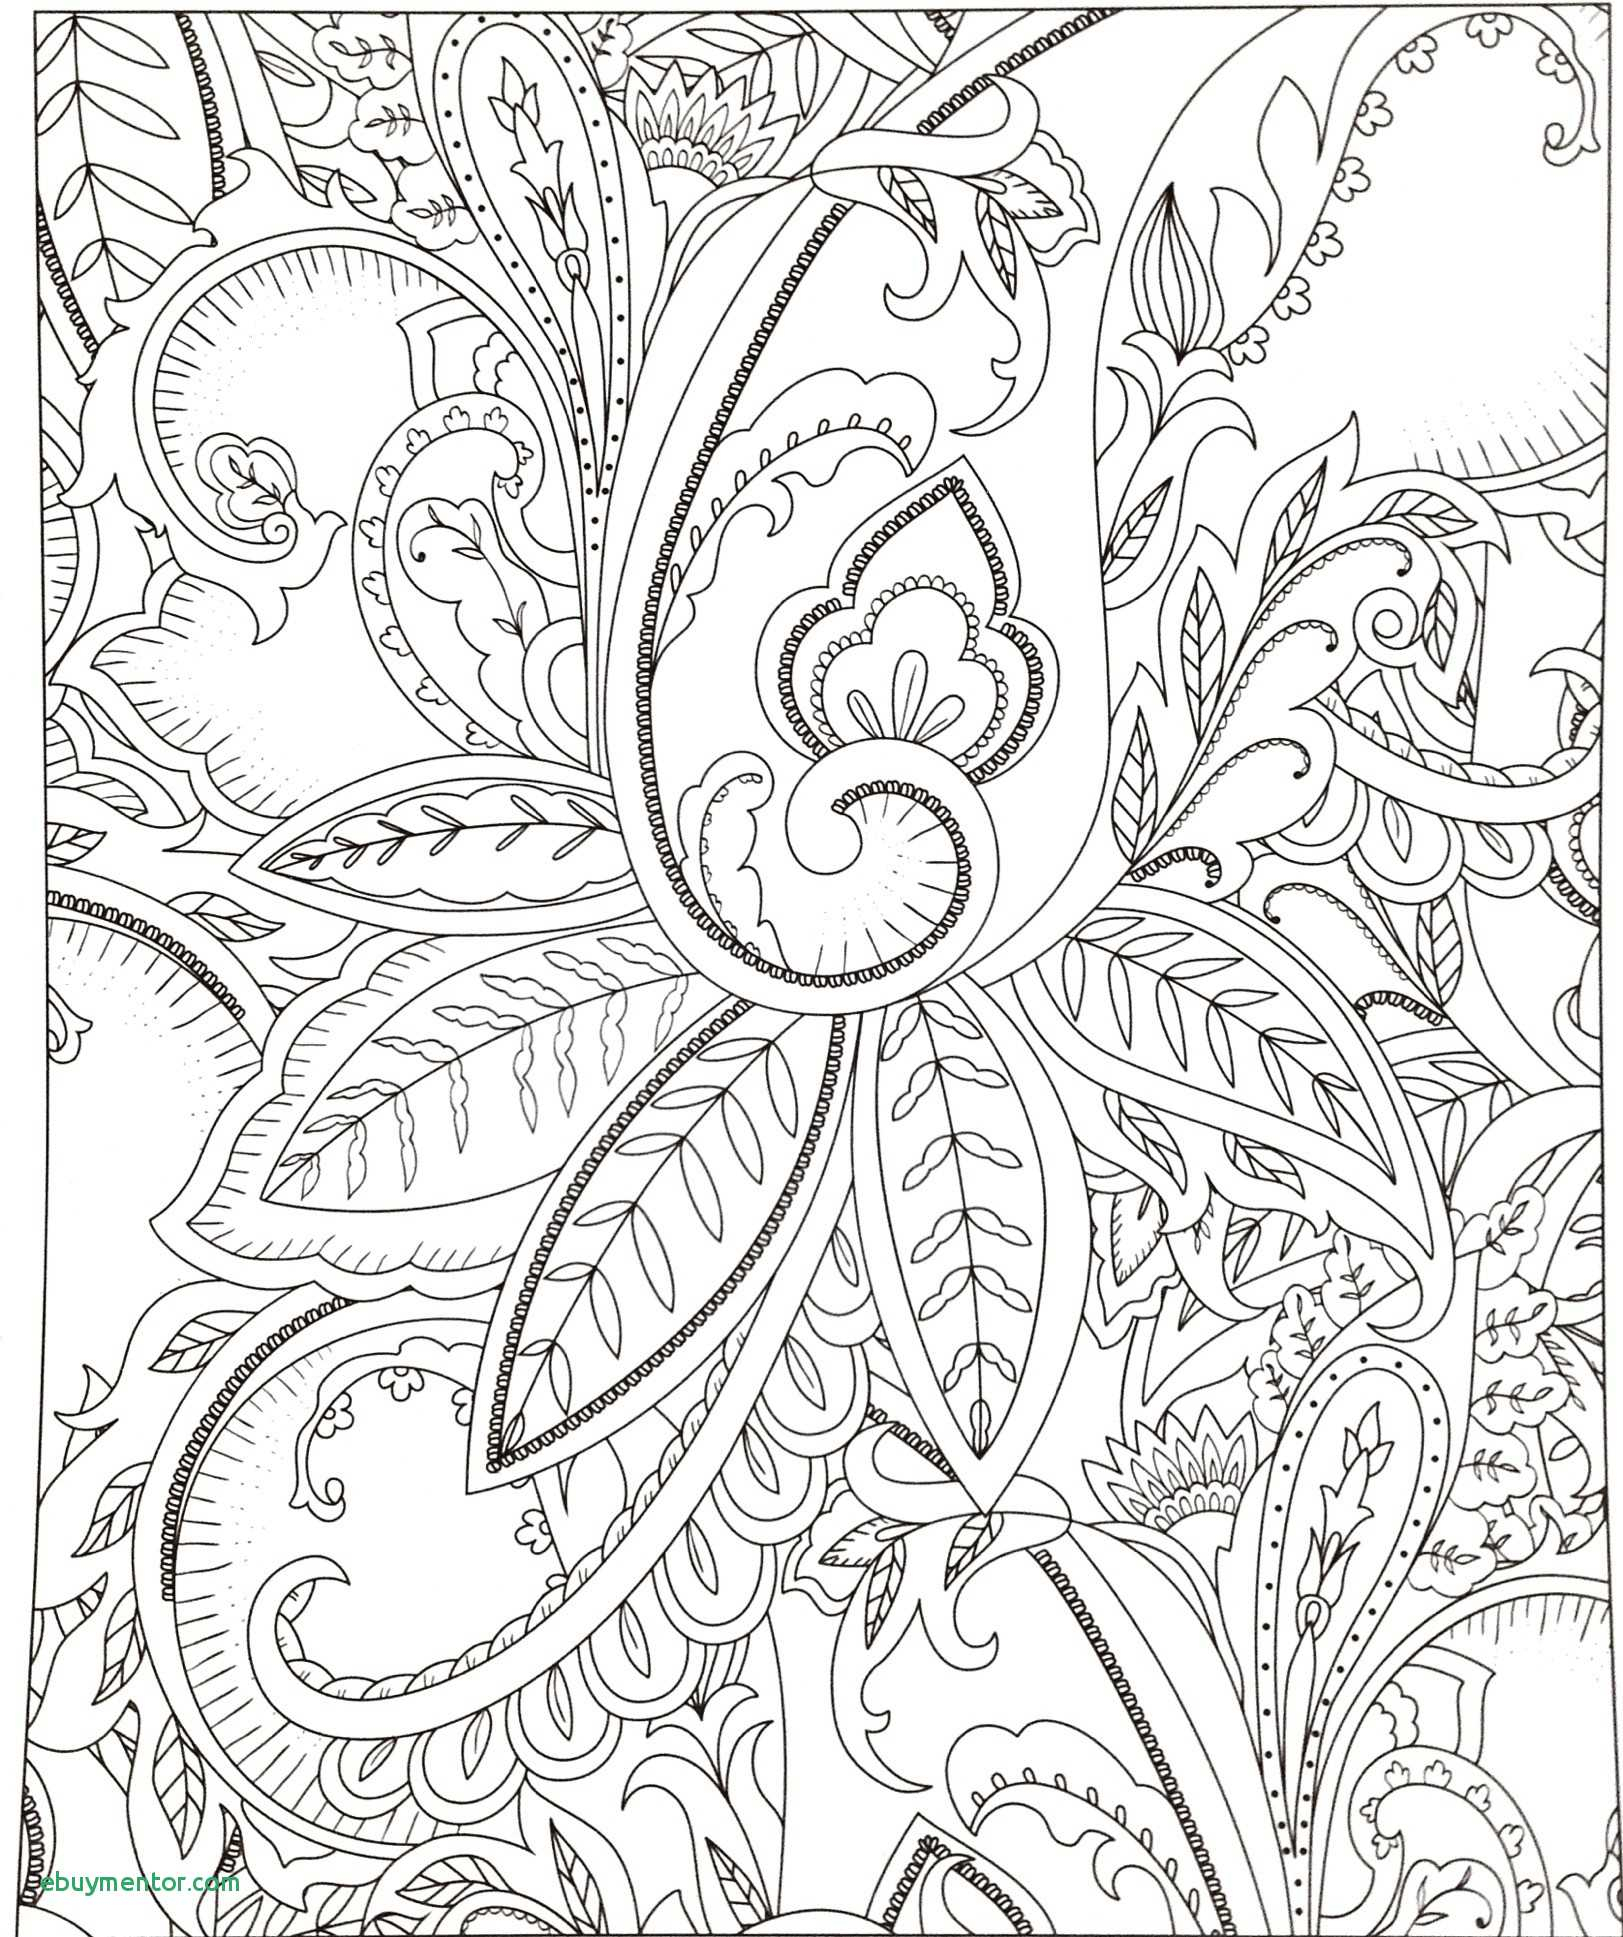 Doodle Coloring Pages  Gallery 11l - To print for your project